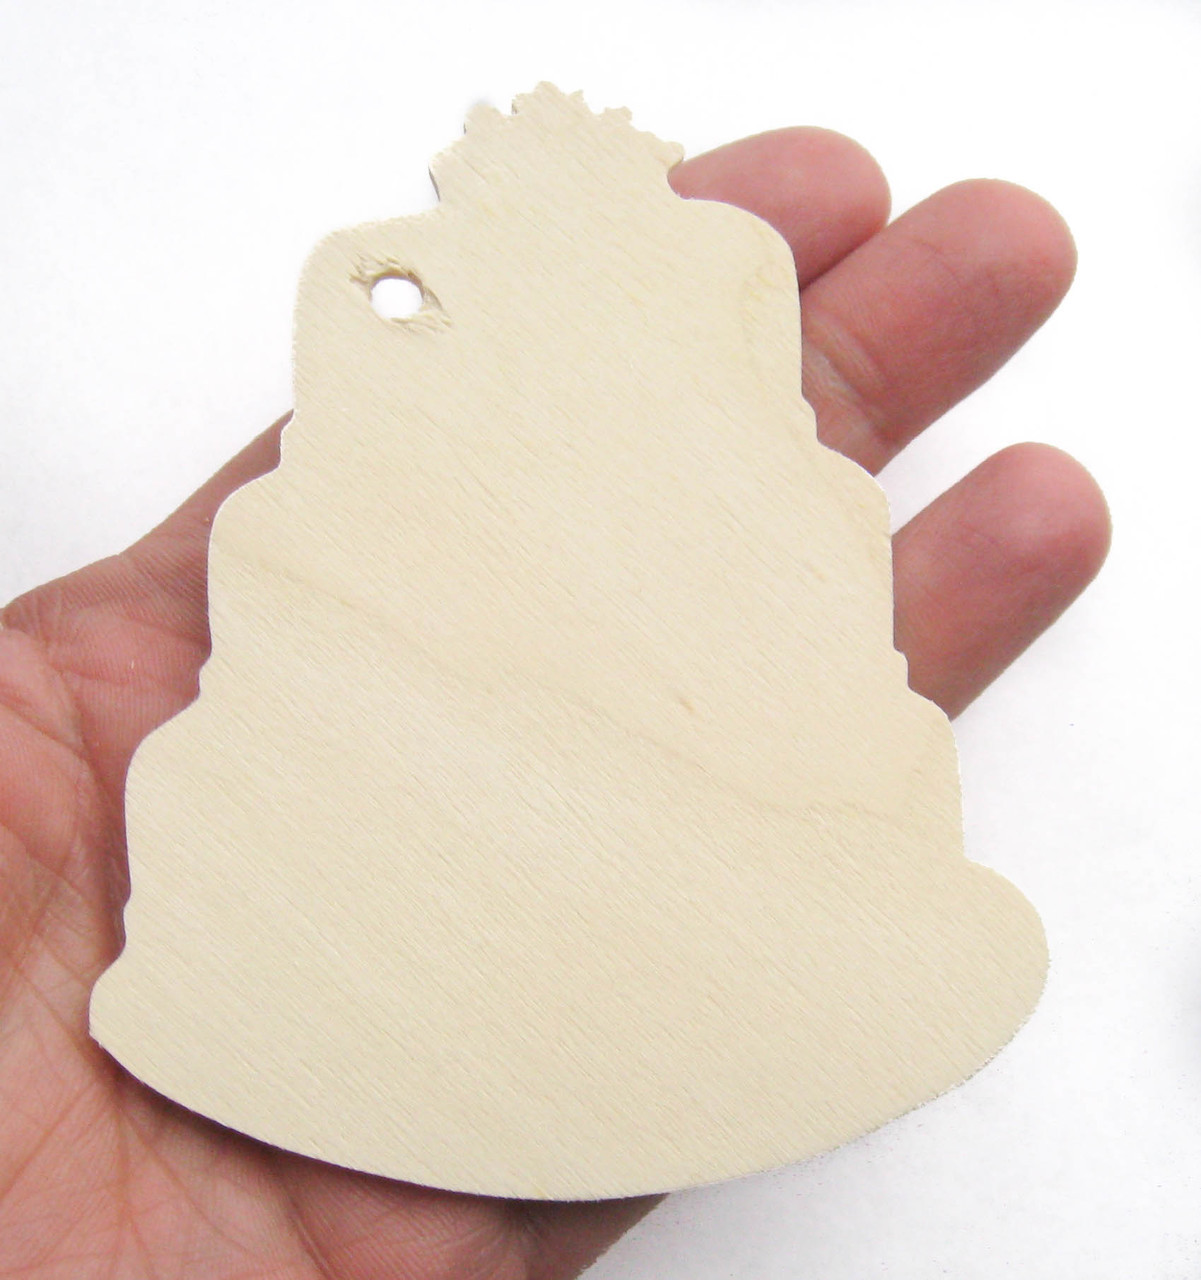 Unfinished birch wood tag ornament wedding birthday cake shape cutout diy craft kit